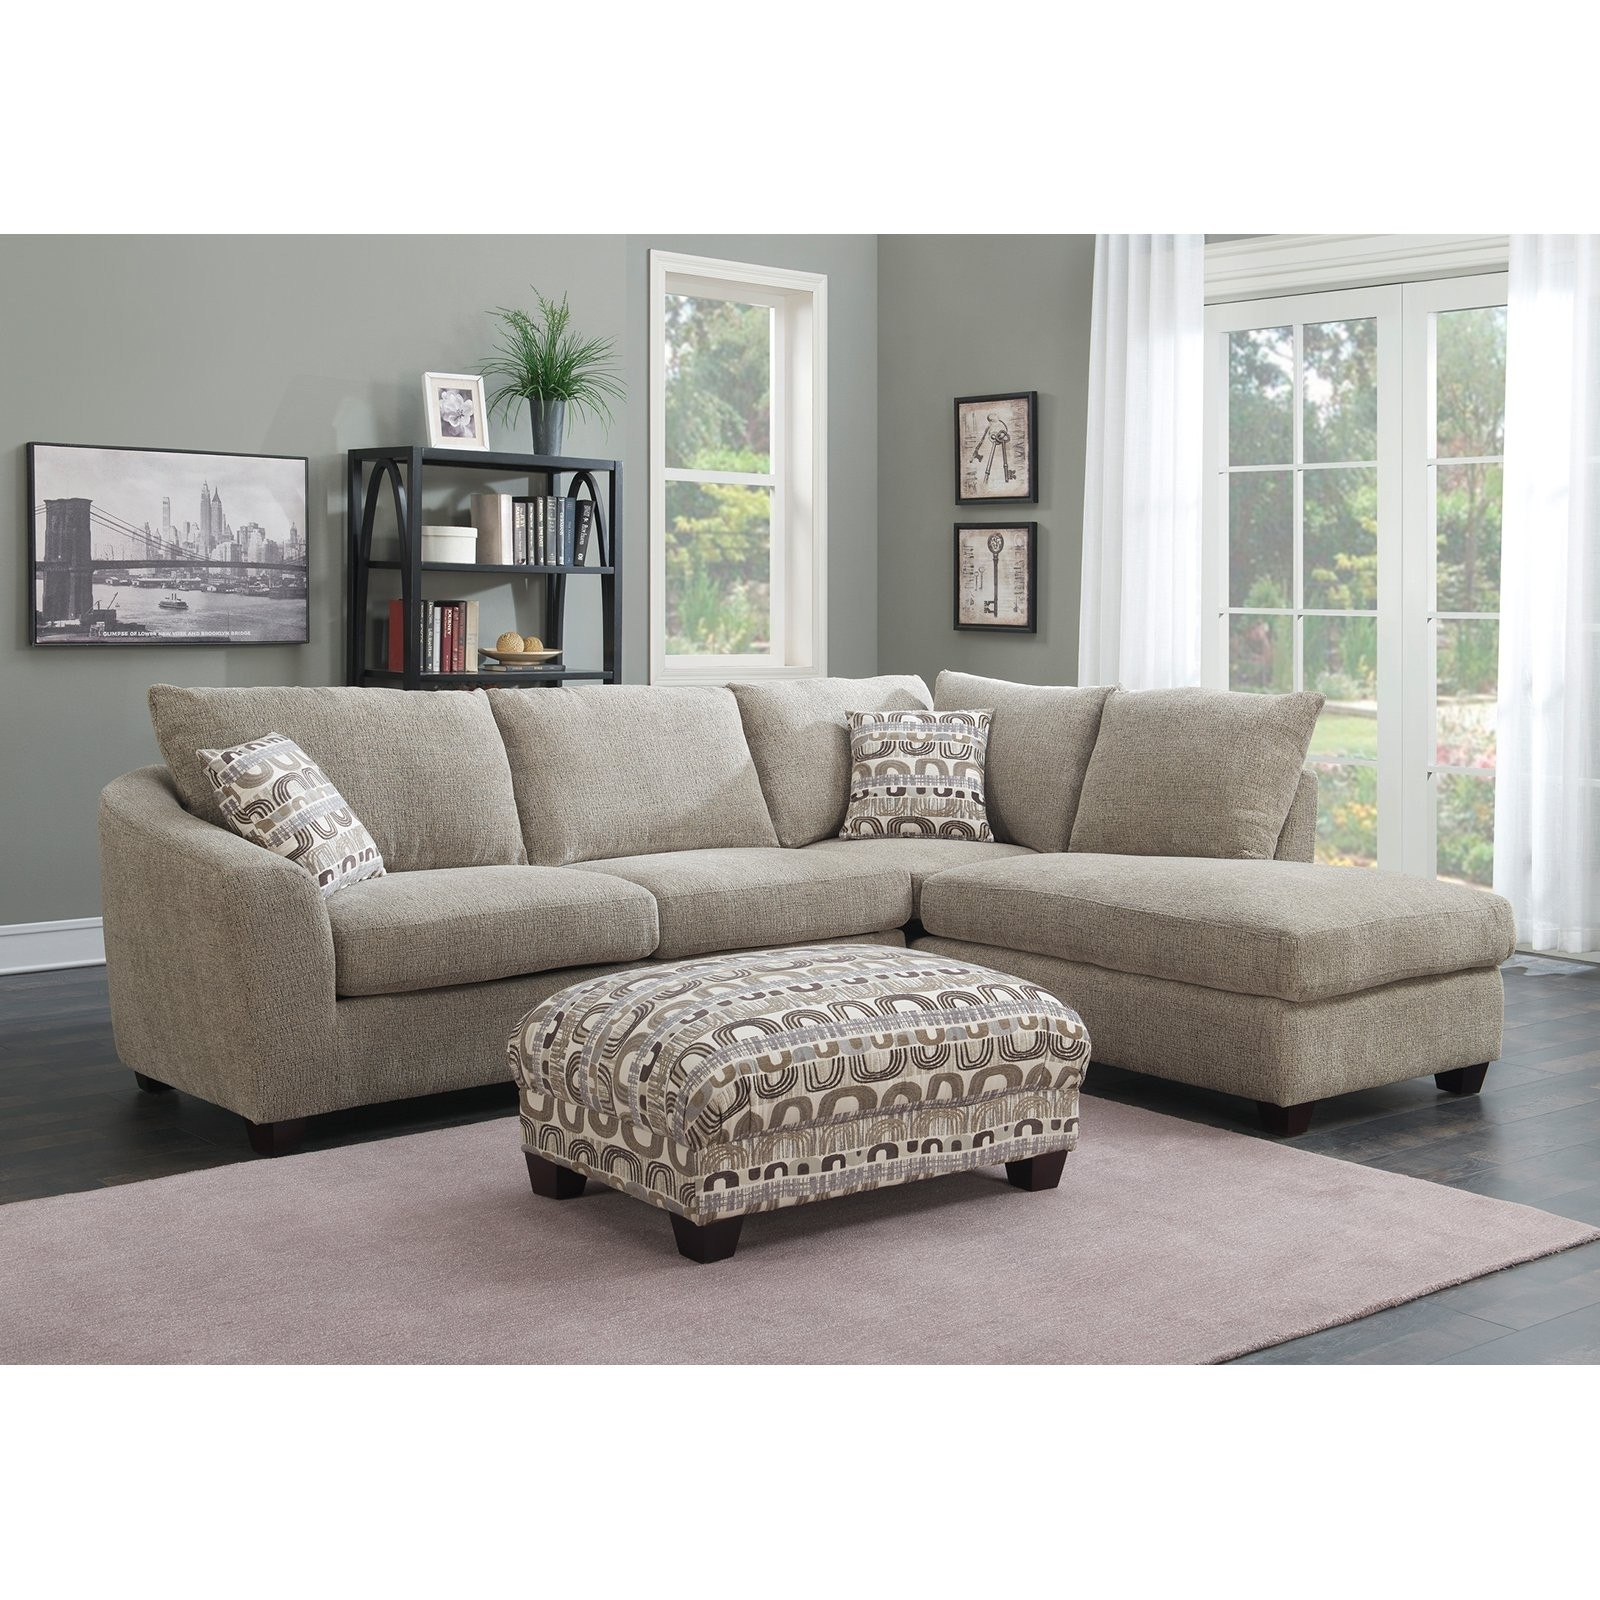 25 top delano 2 piece sectionals with laf oversized chaise sofa ideas. Black Bedroom Furniture Sets. Home Design Ideas